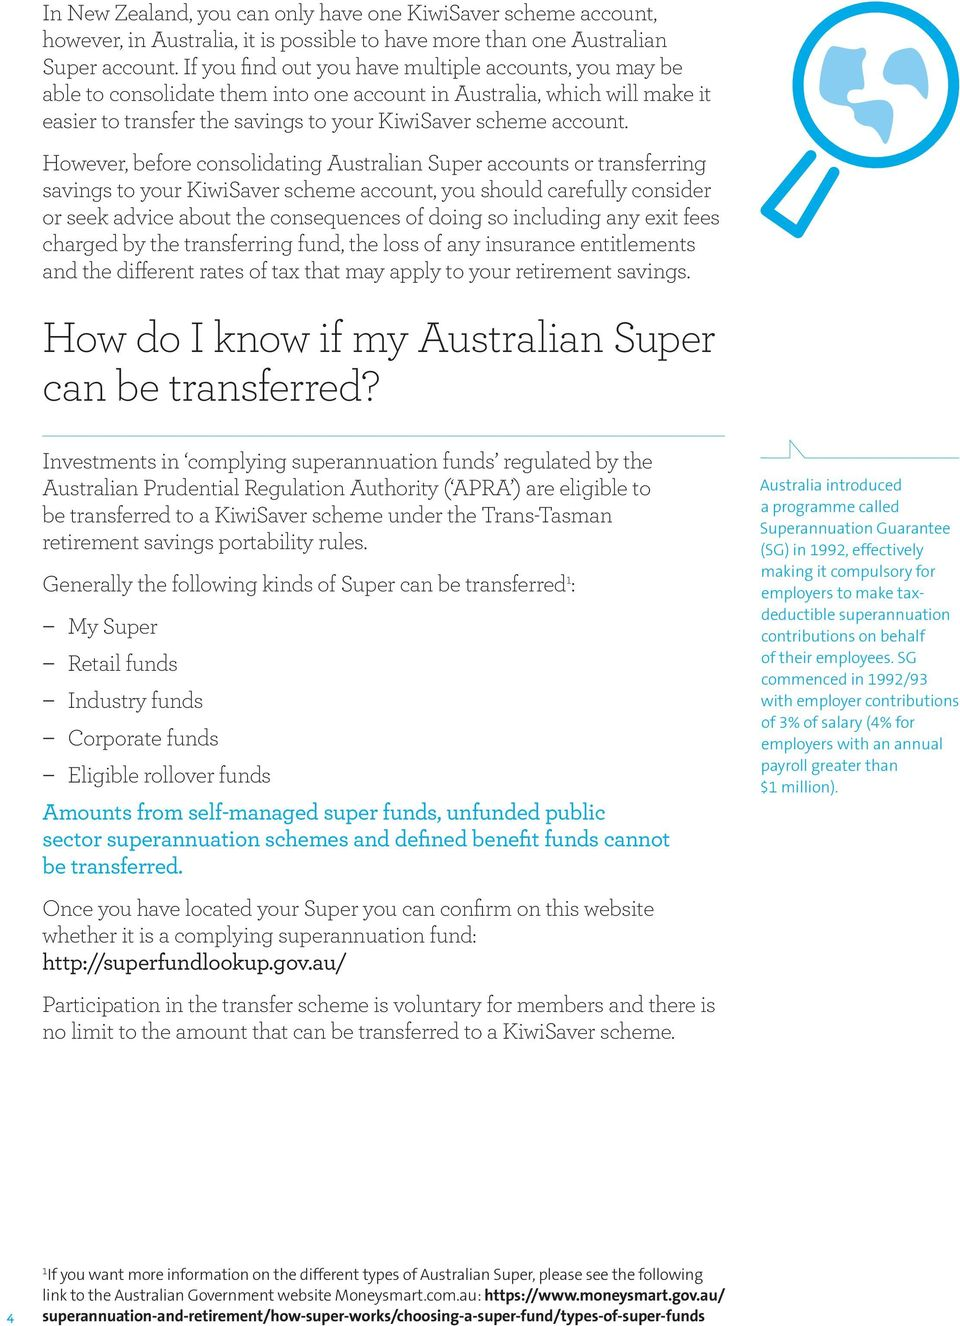 However, before consolidating Australian Super accounts or transferring savings to your KiwiSaver scheme account, you should carefully consider or seek advice about the consequences of doing so